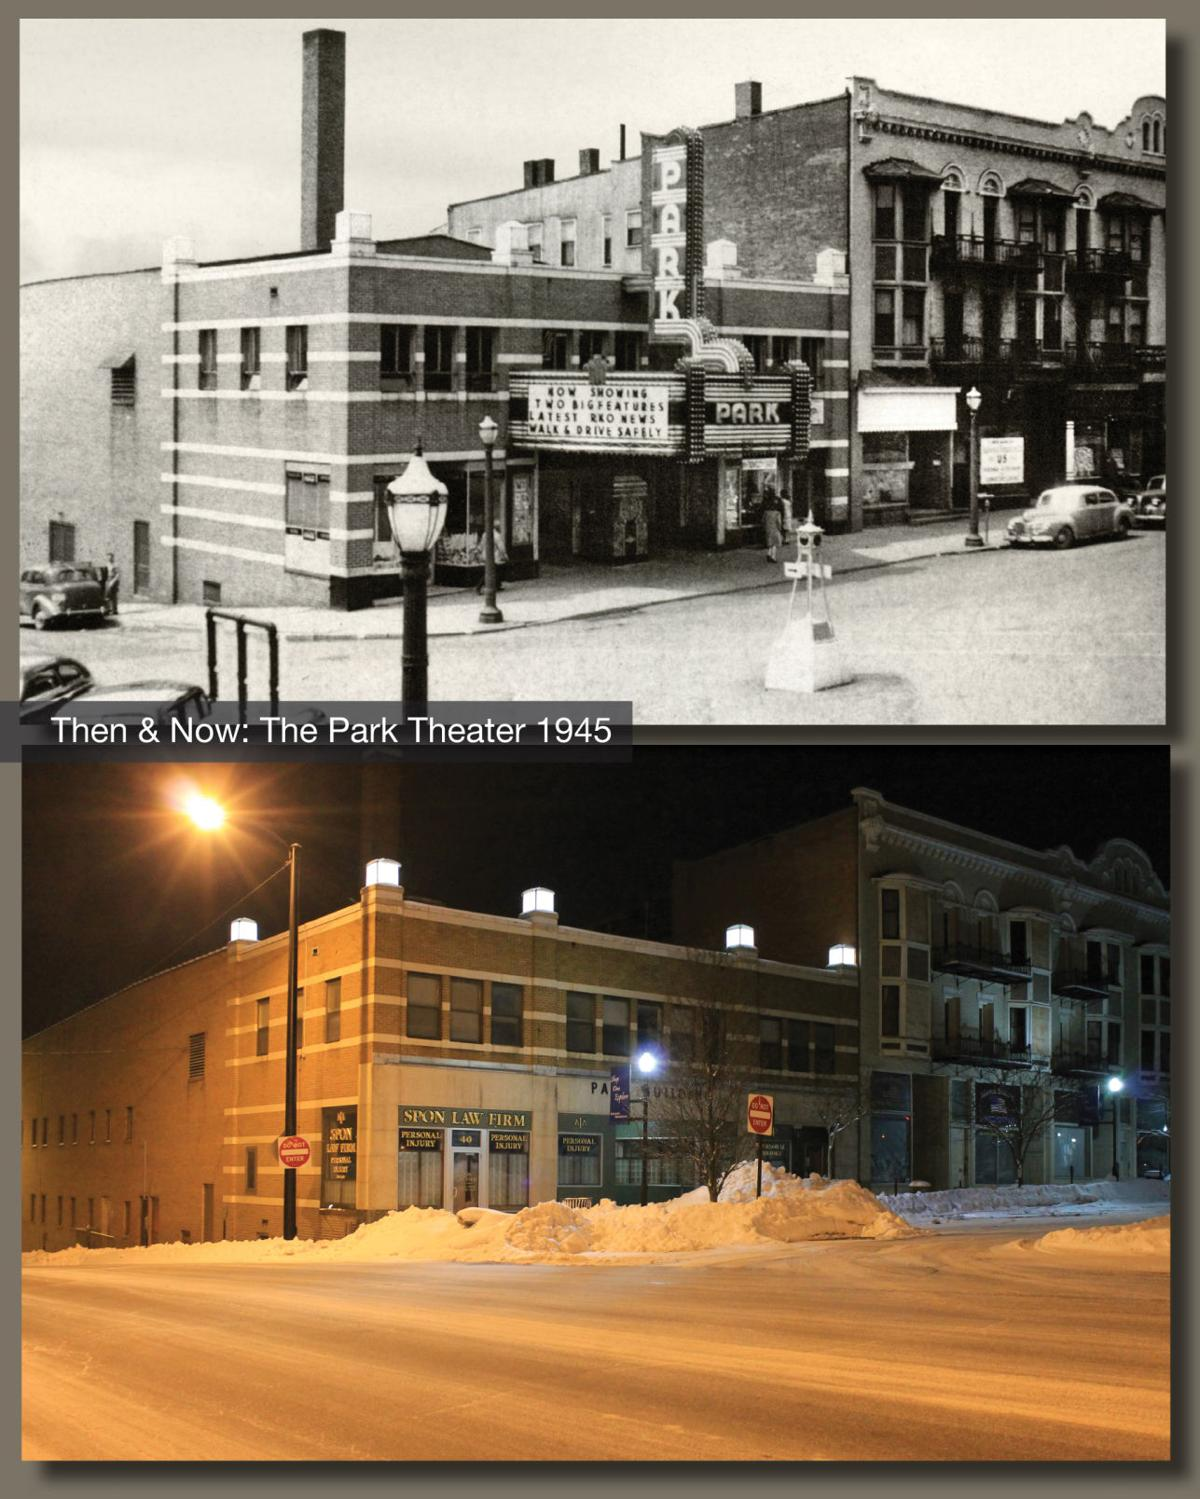 Then & Now: Park Theater